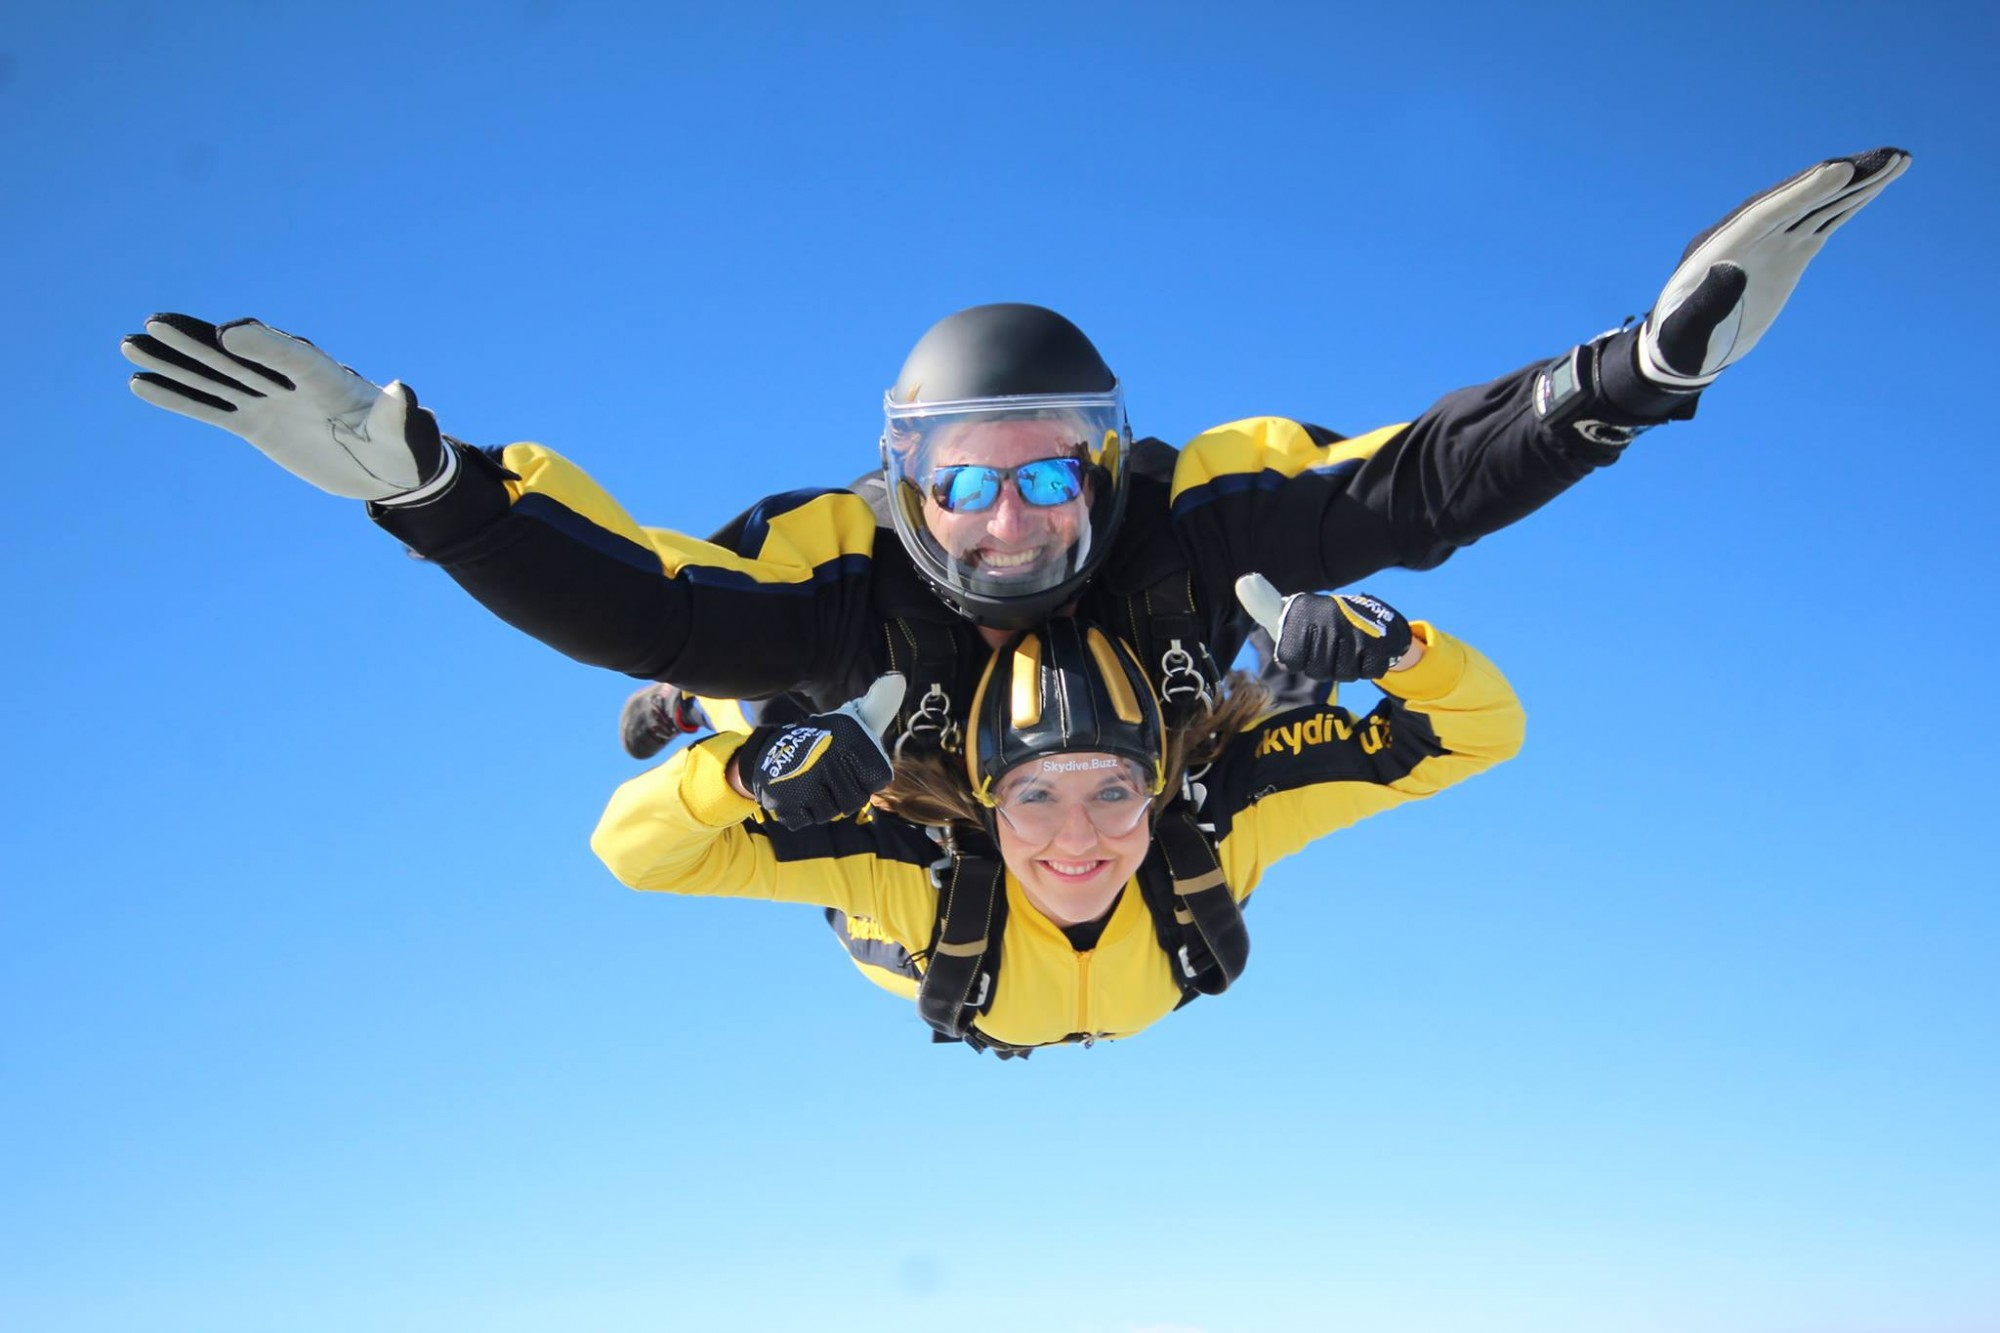 Want to take part in our charity skydive?